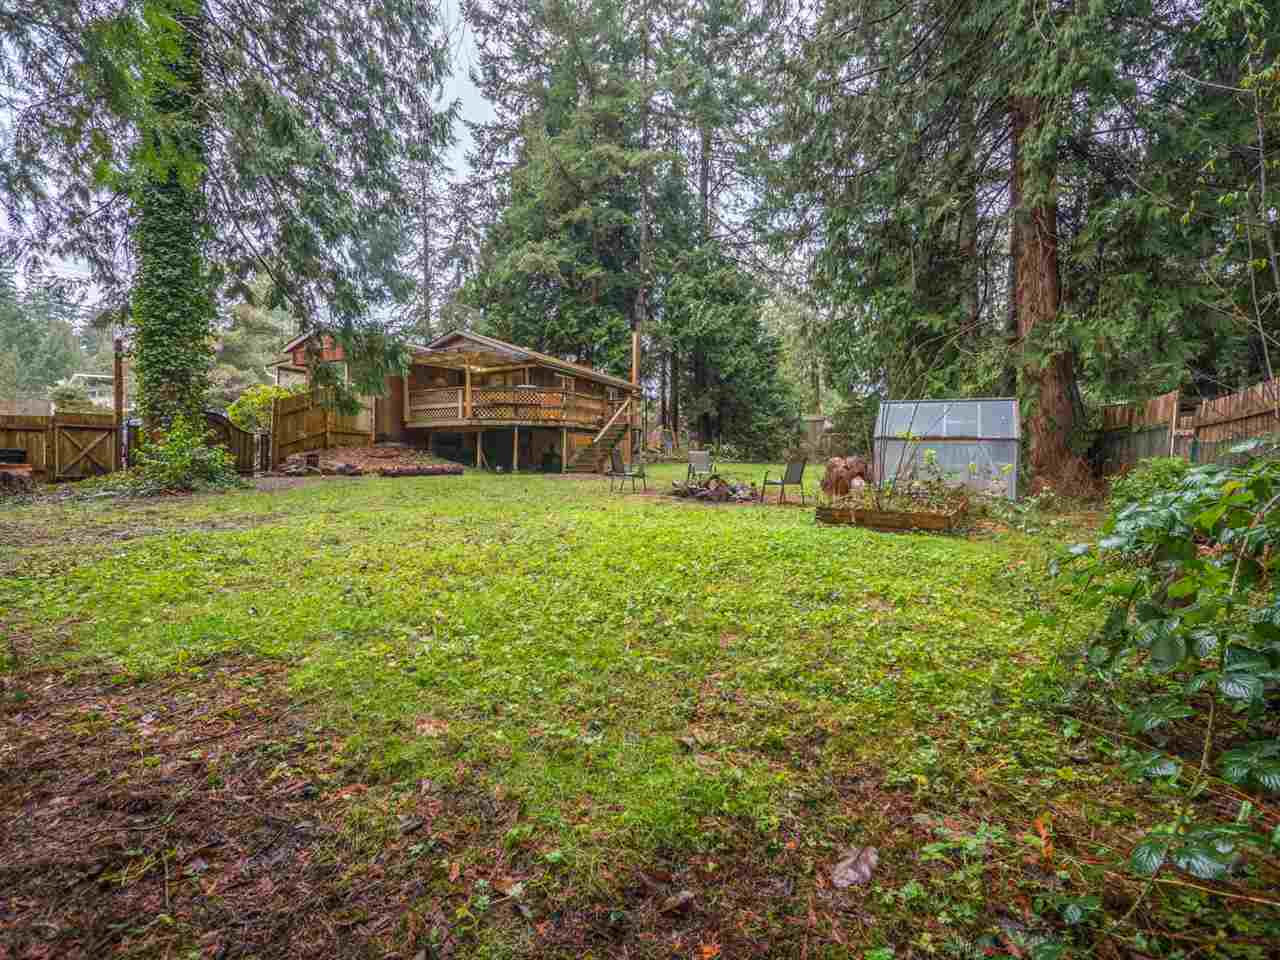 Photo 16: Photos: 5592 WAKEFIELD Road in Sechelt: Sechelt District Manufactured Home for sale (Sunshine Coast)  : MLS®# R2230720